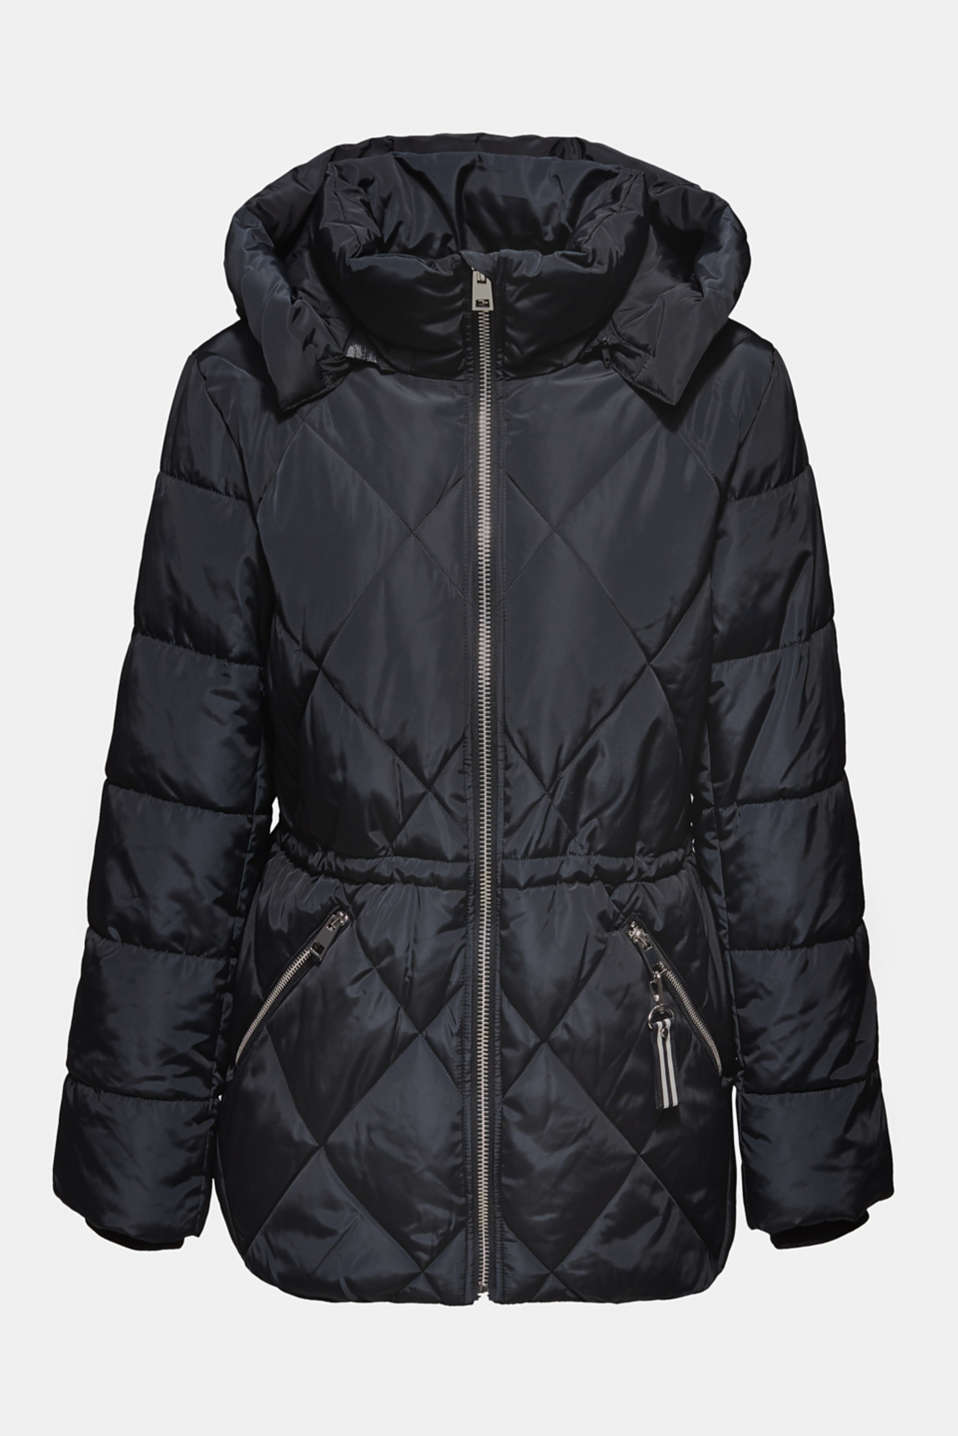 Jackets outdoor woven, BLACK, detail image number 8